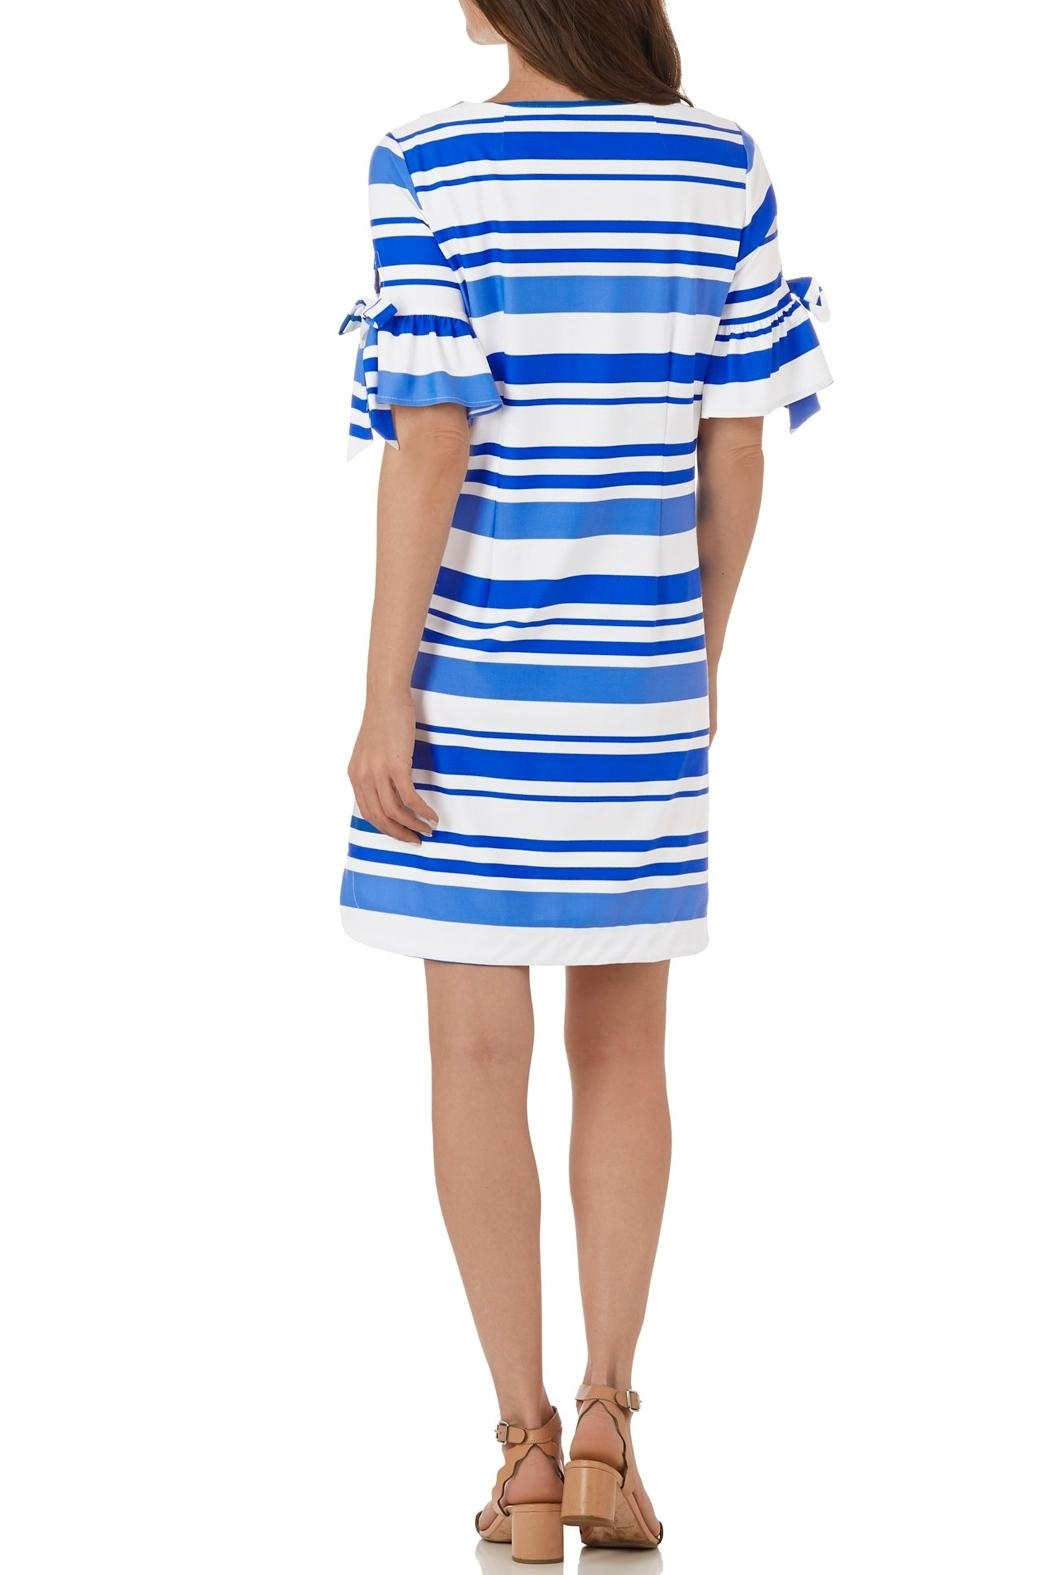 Jude Connally Cory Shift Dress - Front Full Image